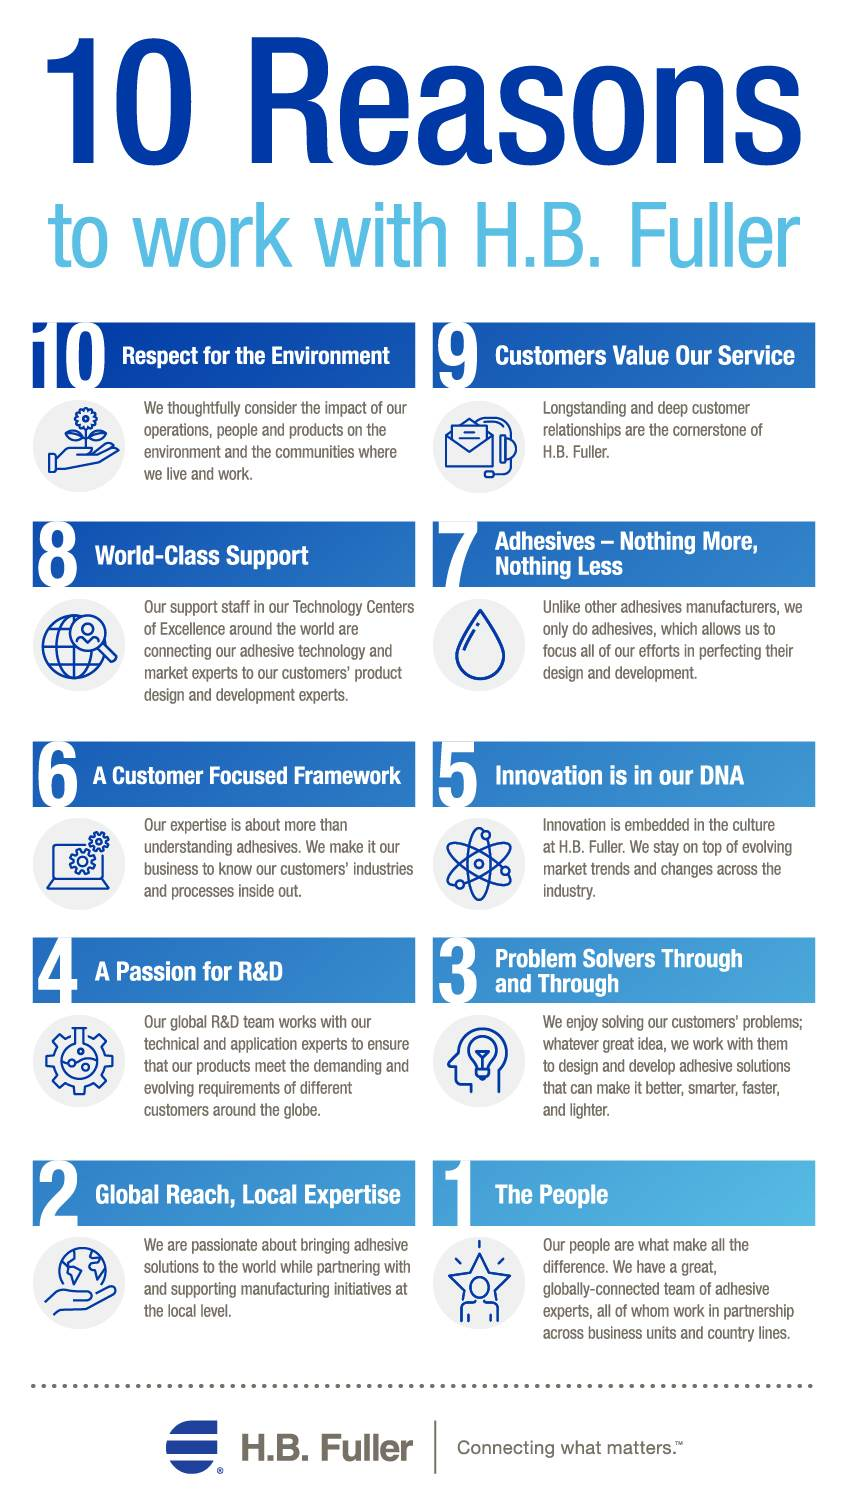 10 Reasons to work with H.B. Fuller Infographic